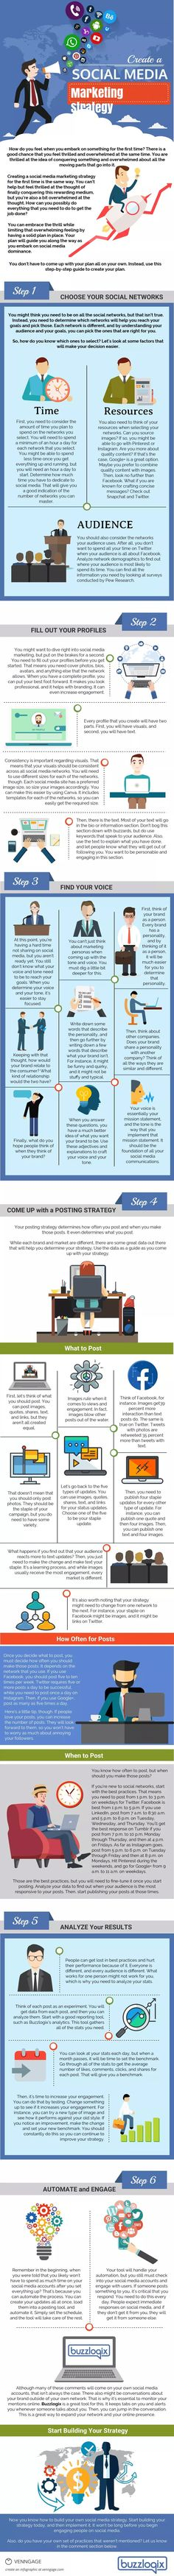 6 Steps to a Successful Social Media Marketing Strategy [Infographic]